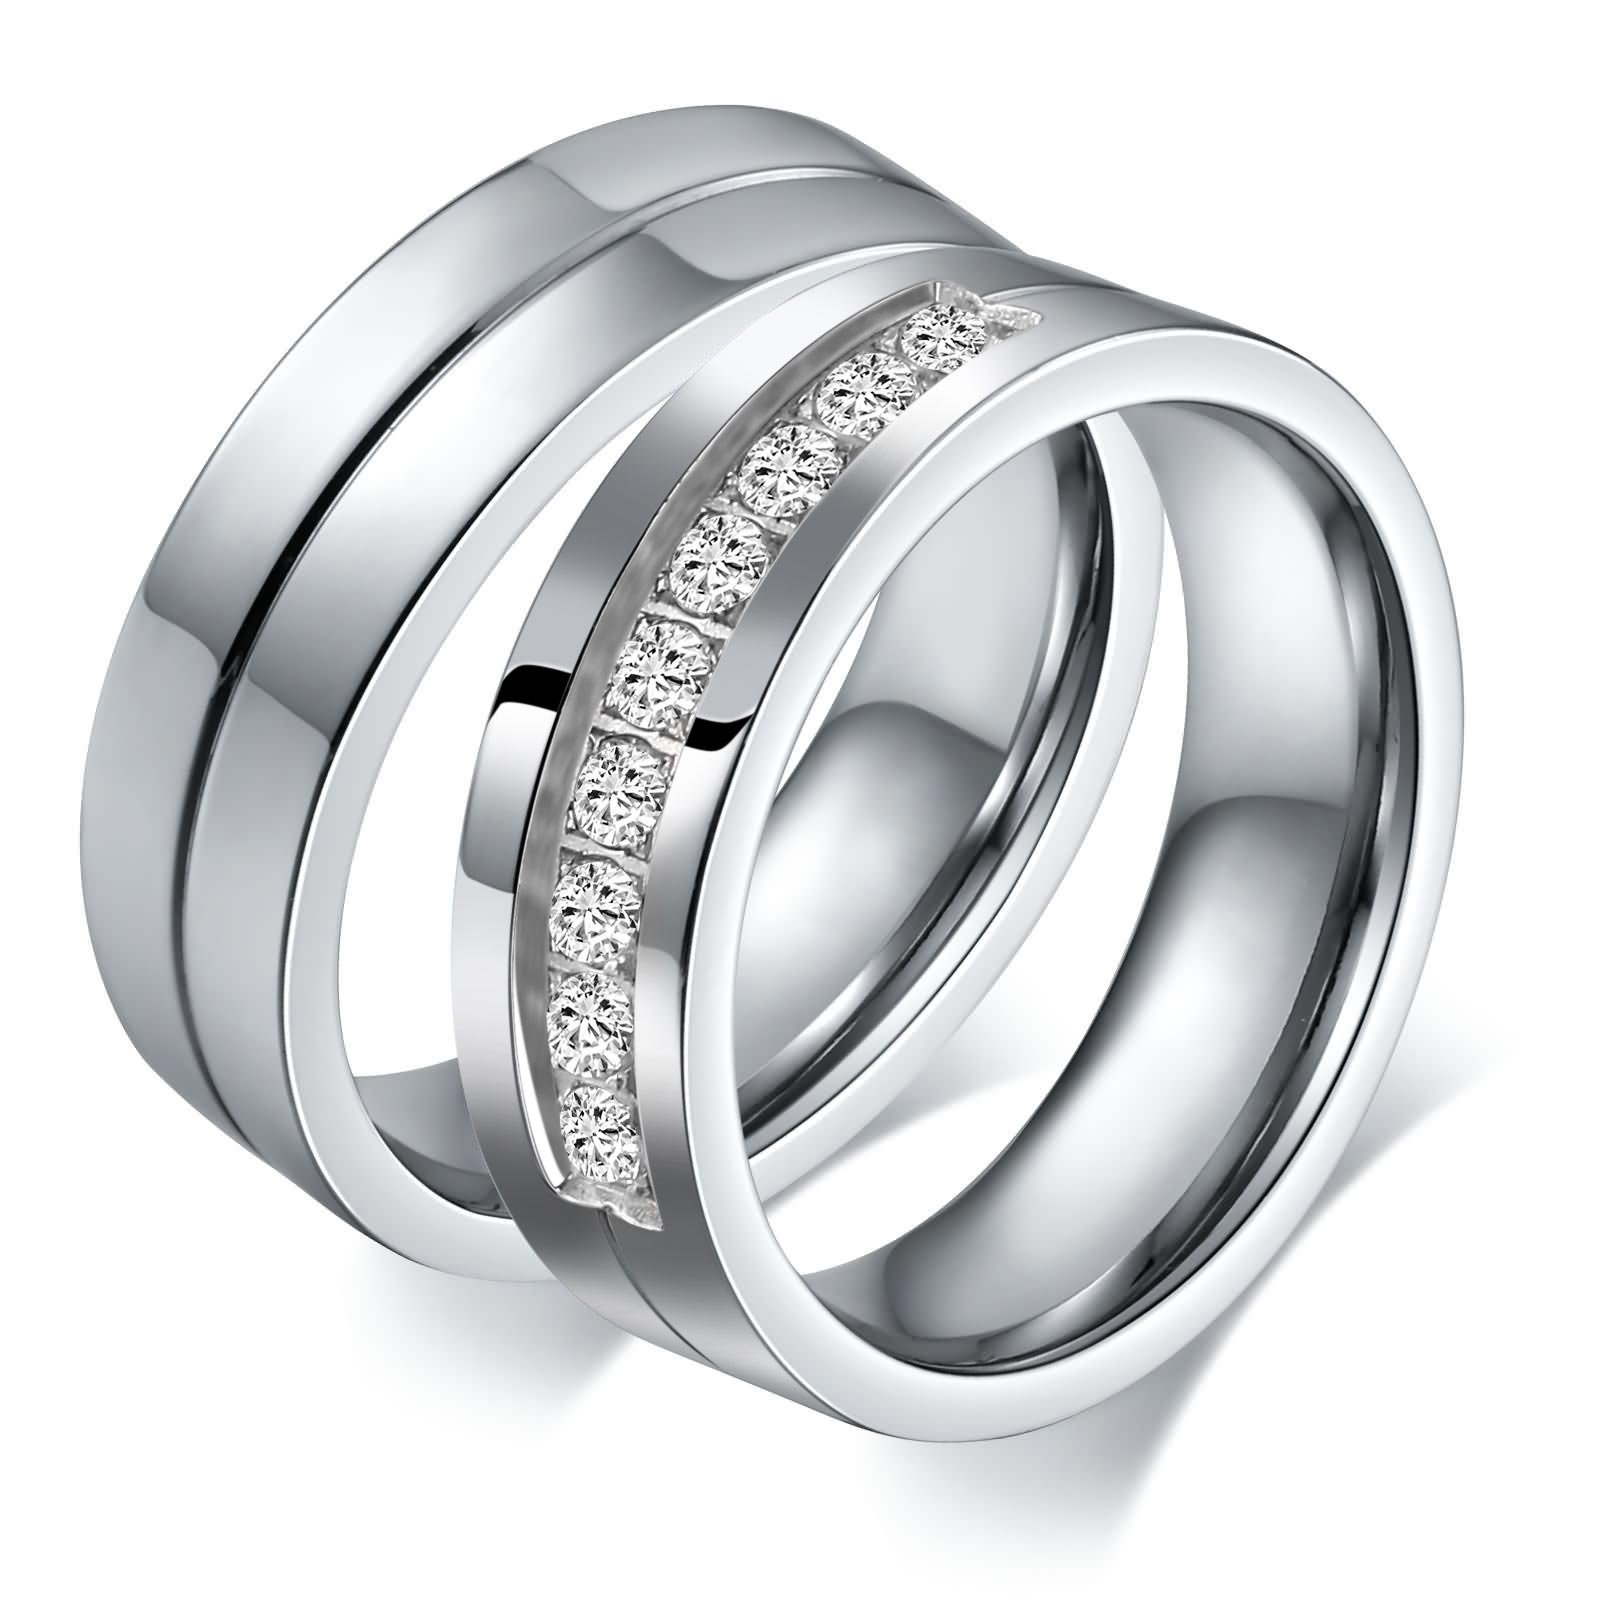 Aeici Stianless Steel Silver ''Forever Love'' Couples Promise Ring Romantic Couples Gift Women Size 9 & 10 by Aeici (Image #3)